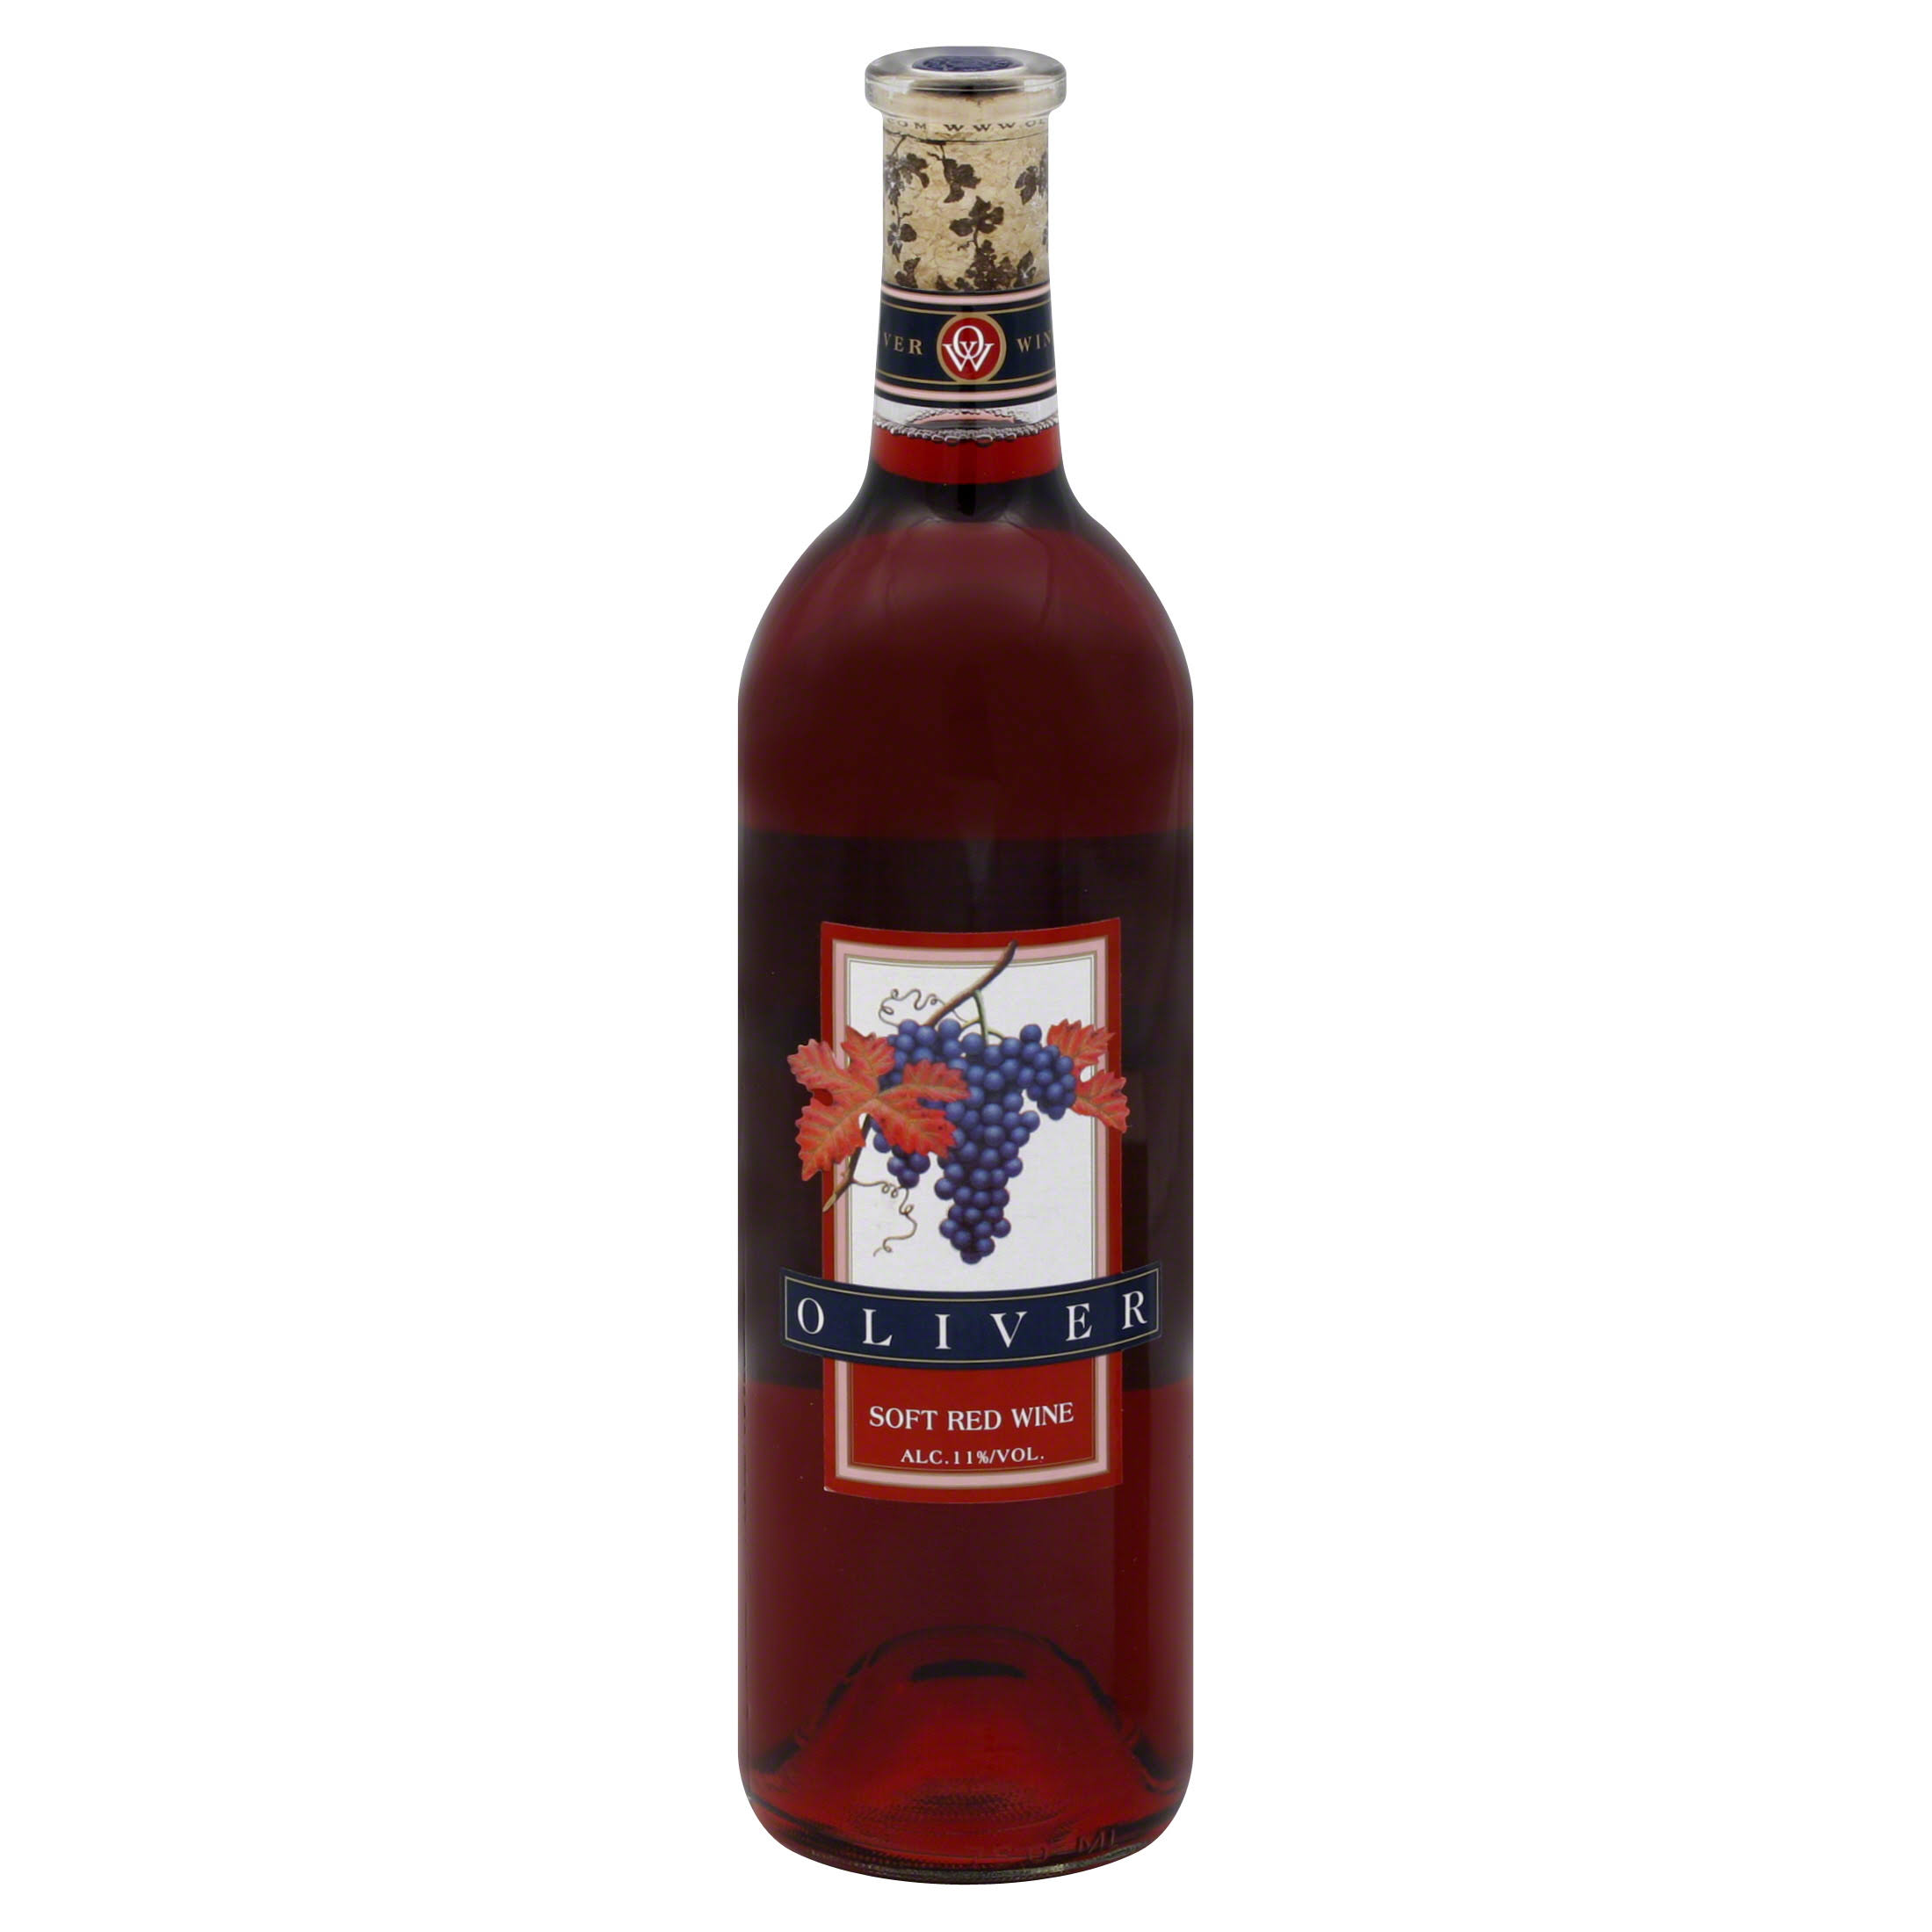 Oliver Soft Red Wine - 750ml